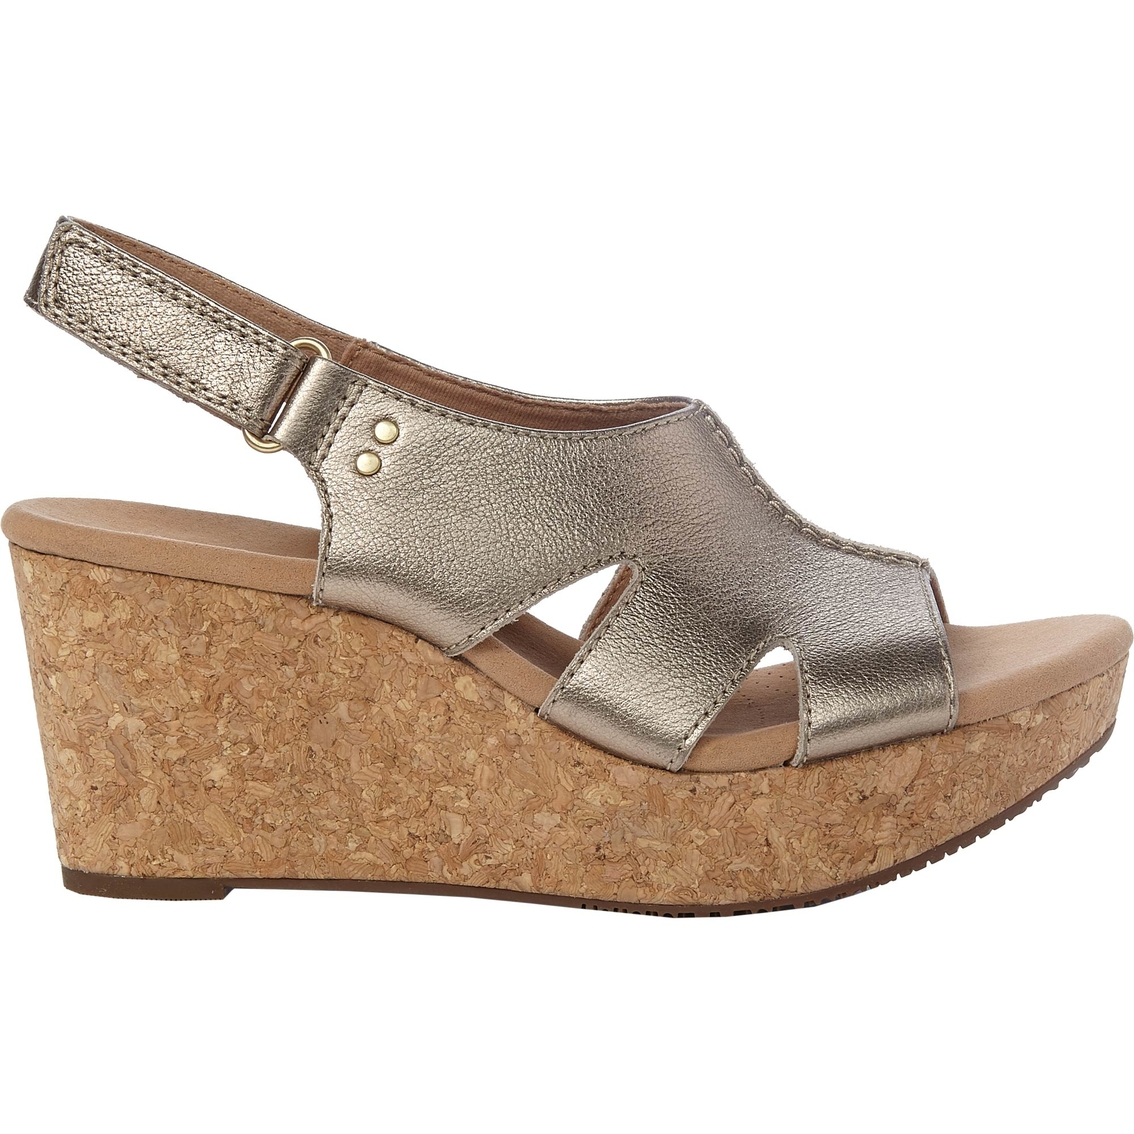 5649c751884 Clarks Annadel Bari Cork Wedge Sandals